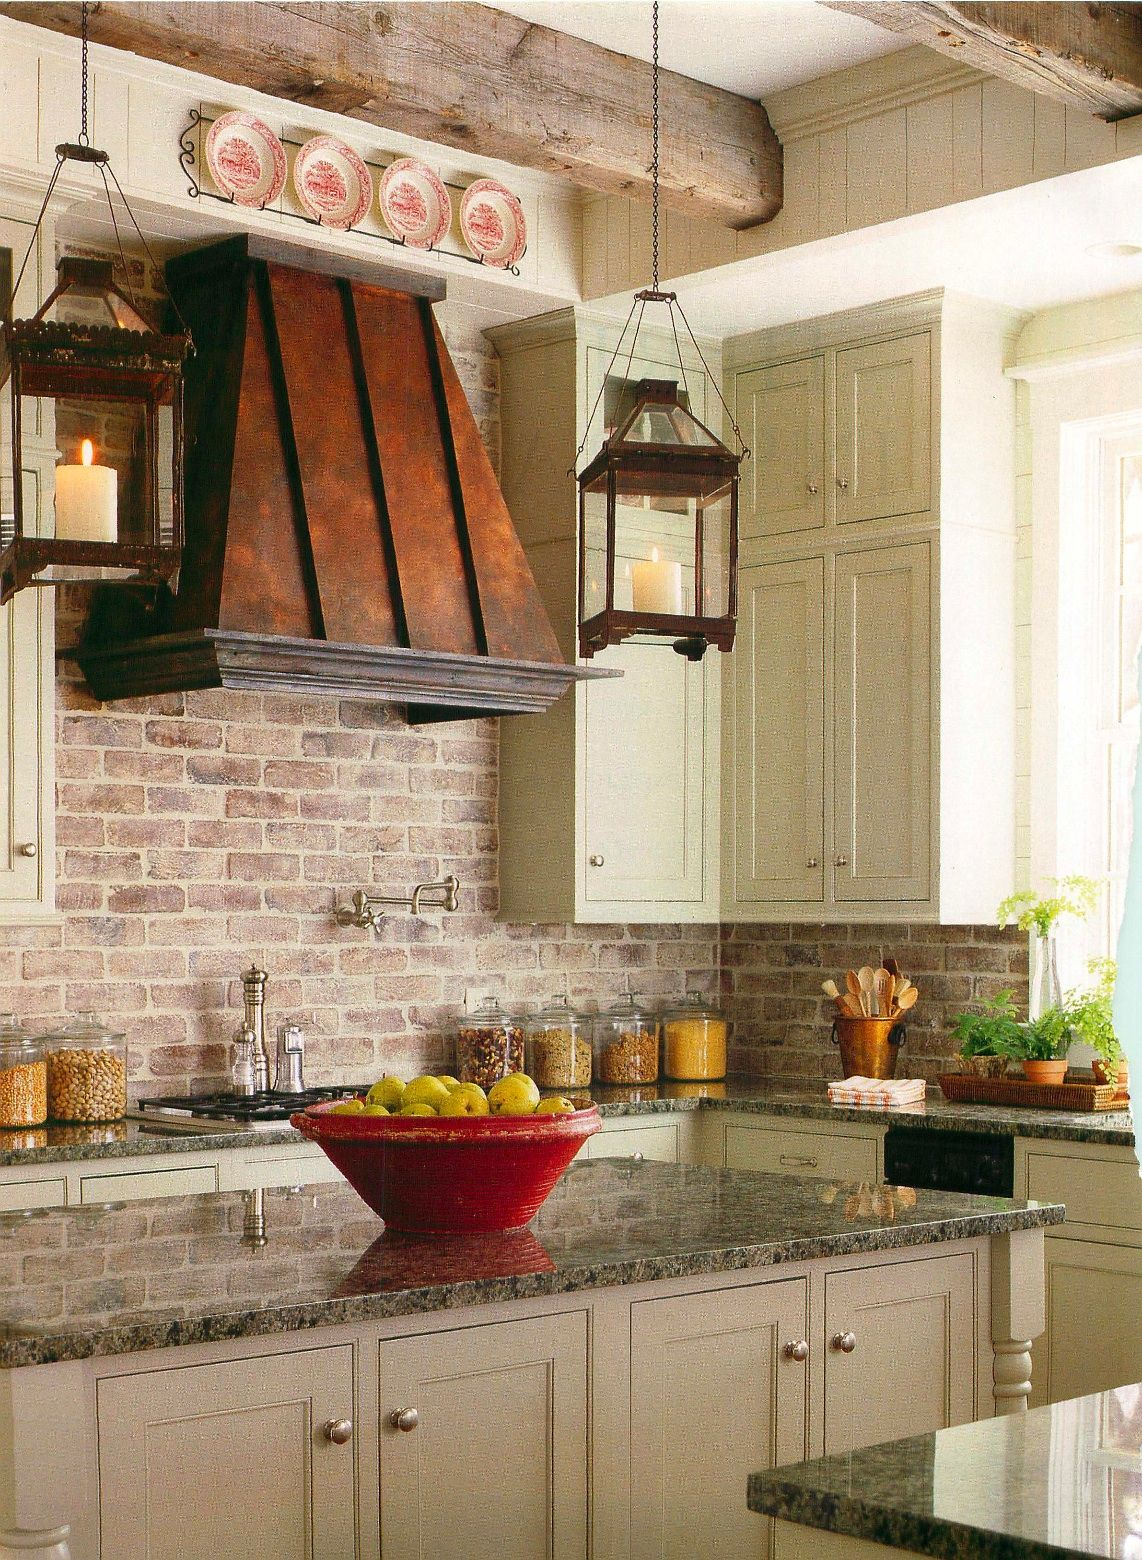 Brick Backsplashes Rustic And Full Of Charm Farmhouse Kitchen